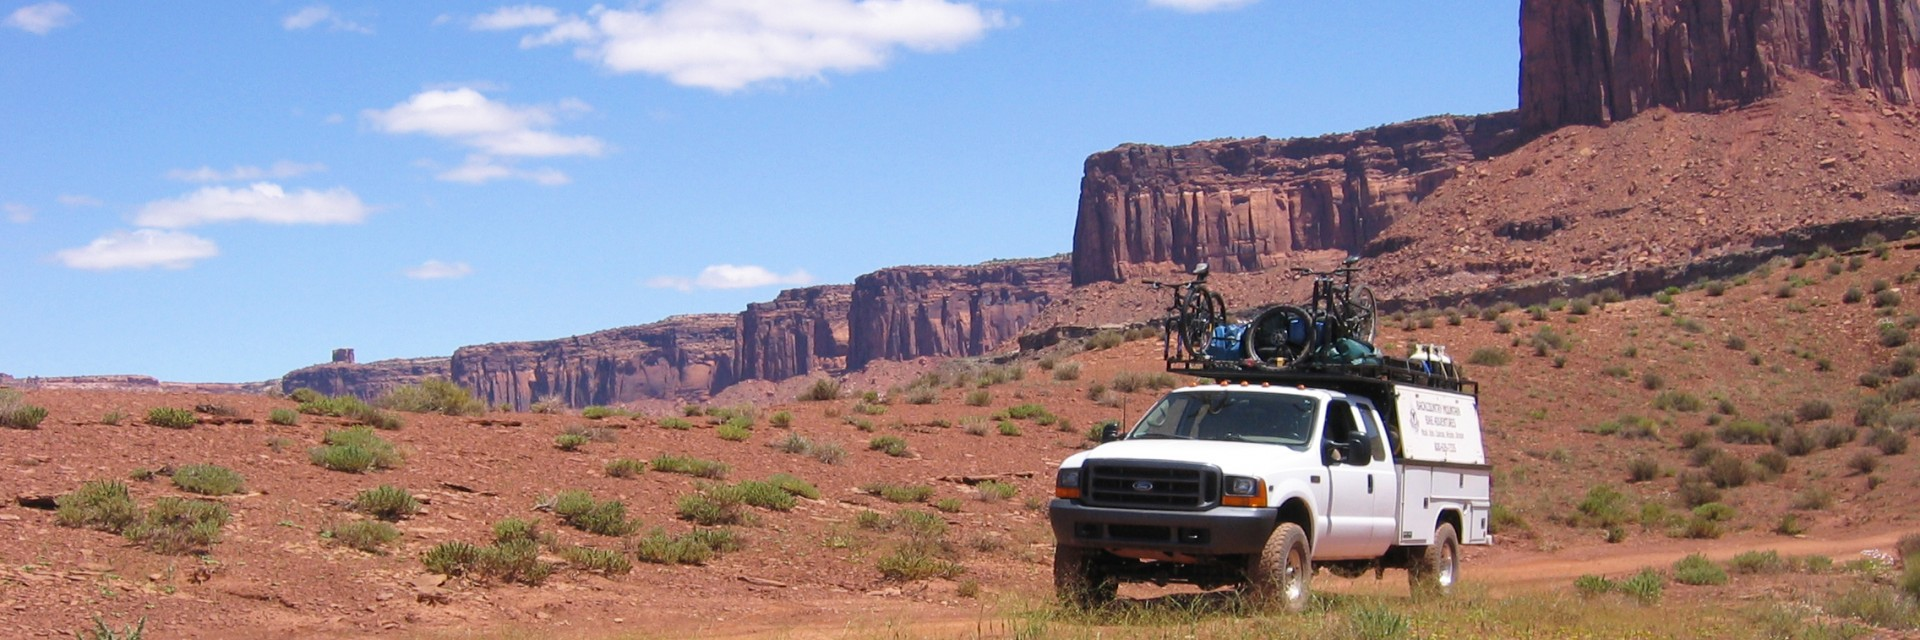 Vehicle support services are available for self-organized tours on the White Rim